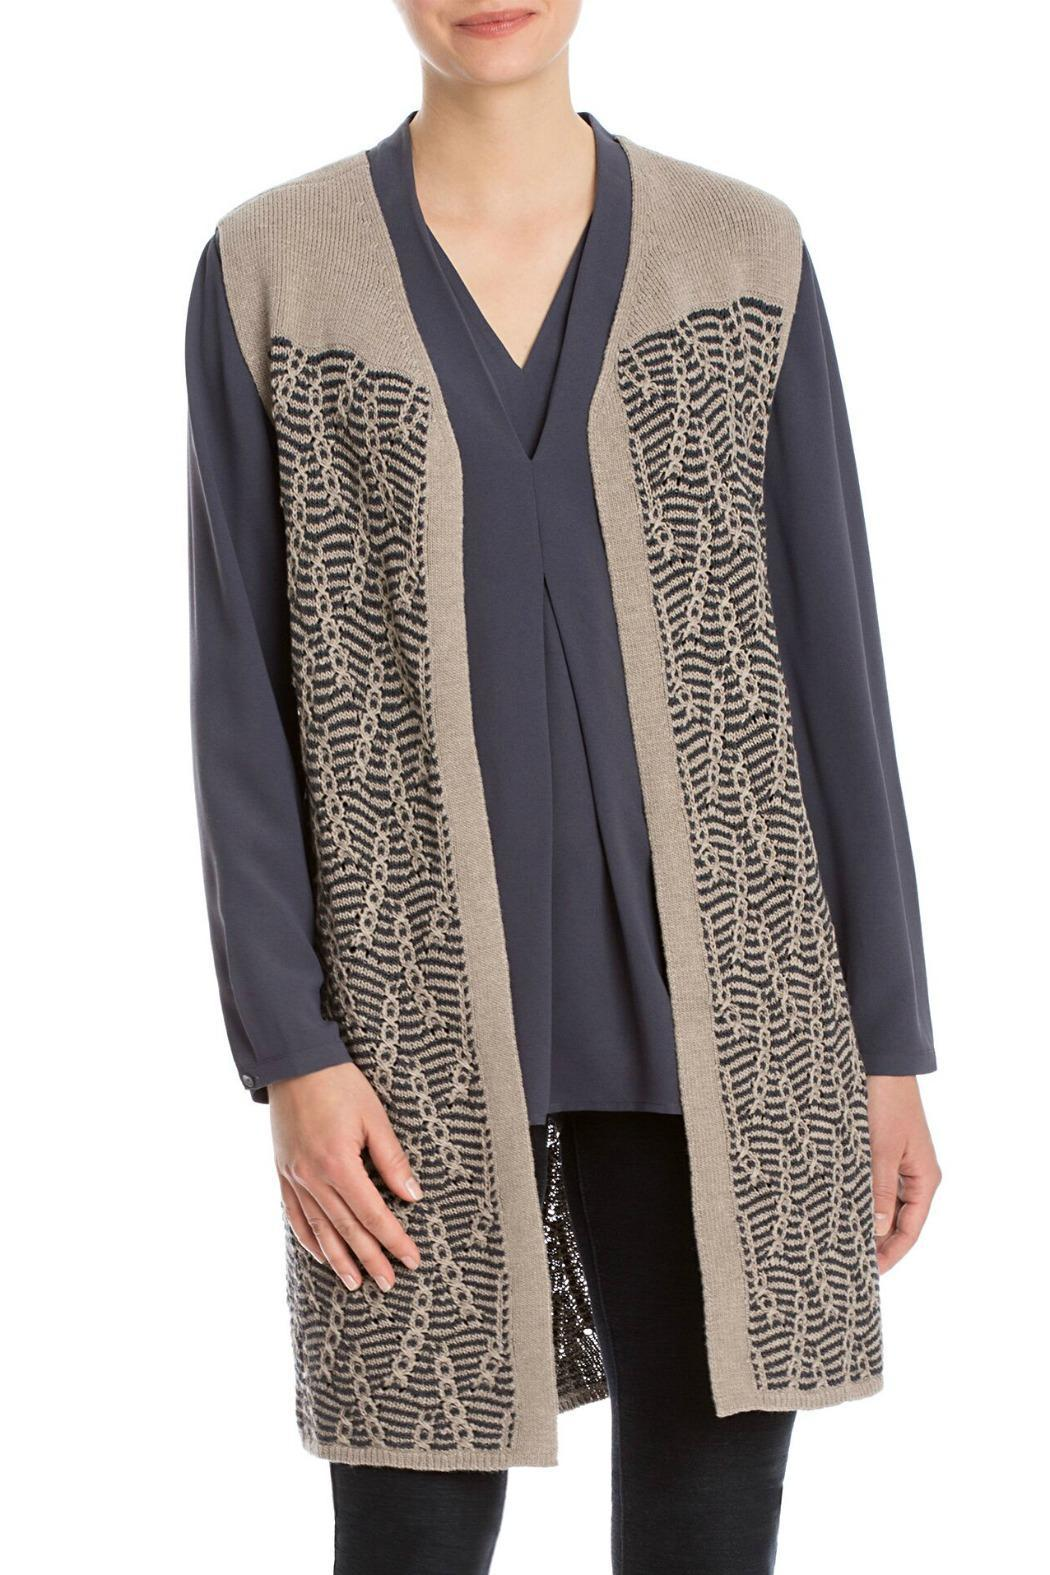 Nic + Zoe Traveling Cables Vest - Main Image